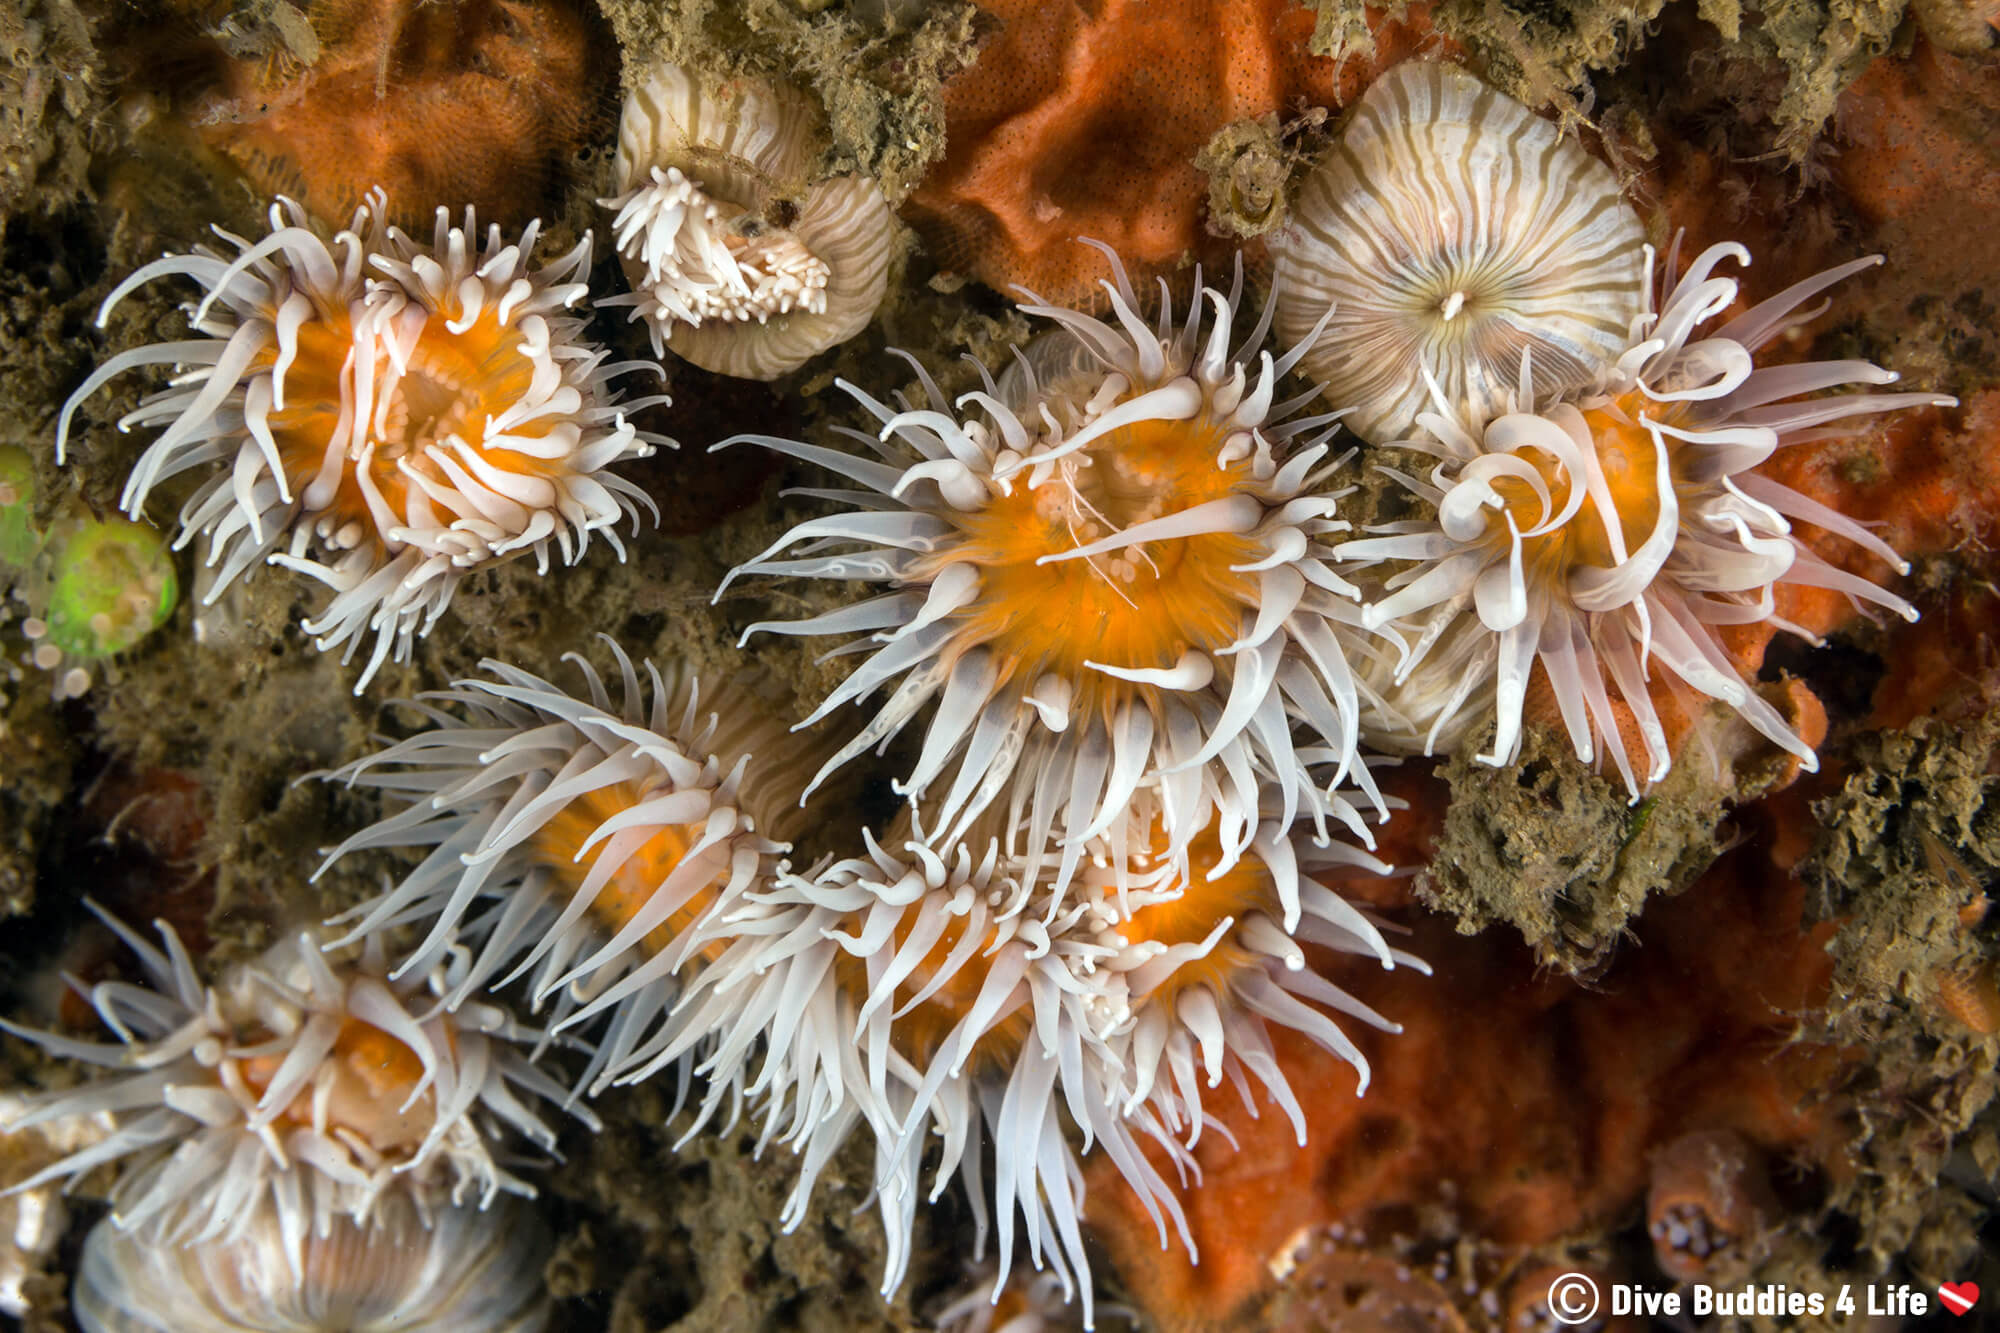 A Bunch Of White And Orange Anemones On A Underwater Rock Wall In Carnac, France